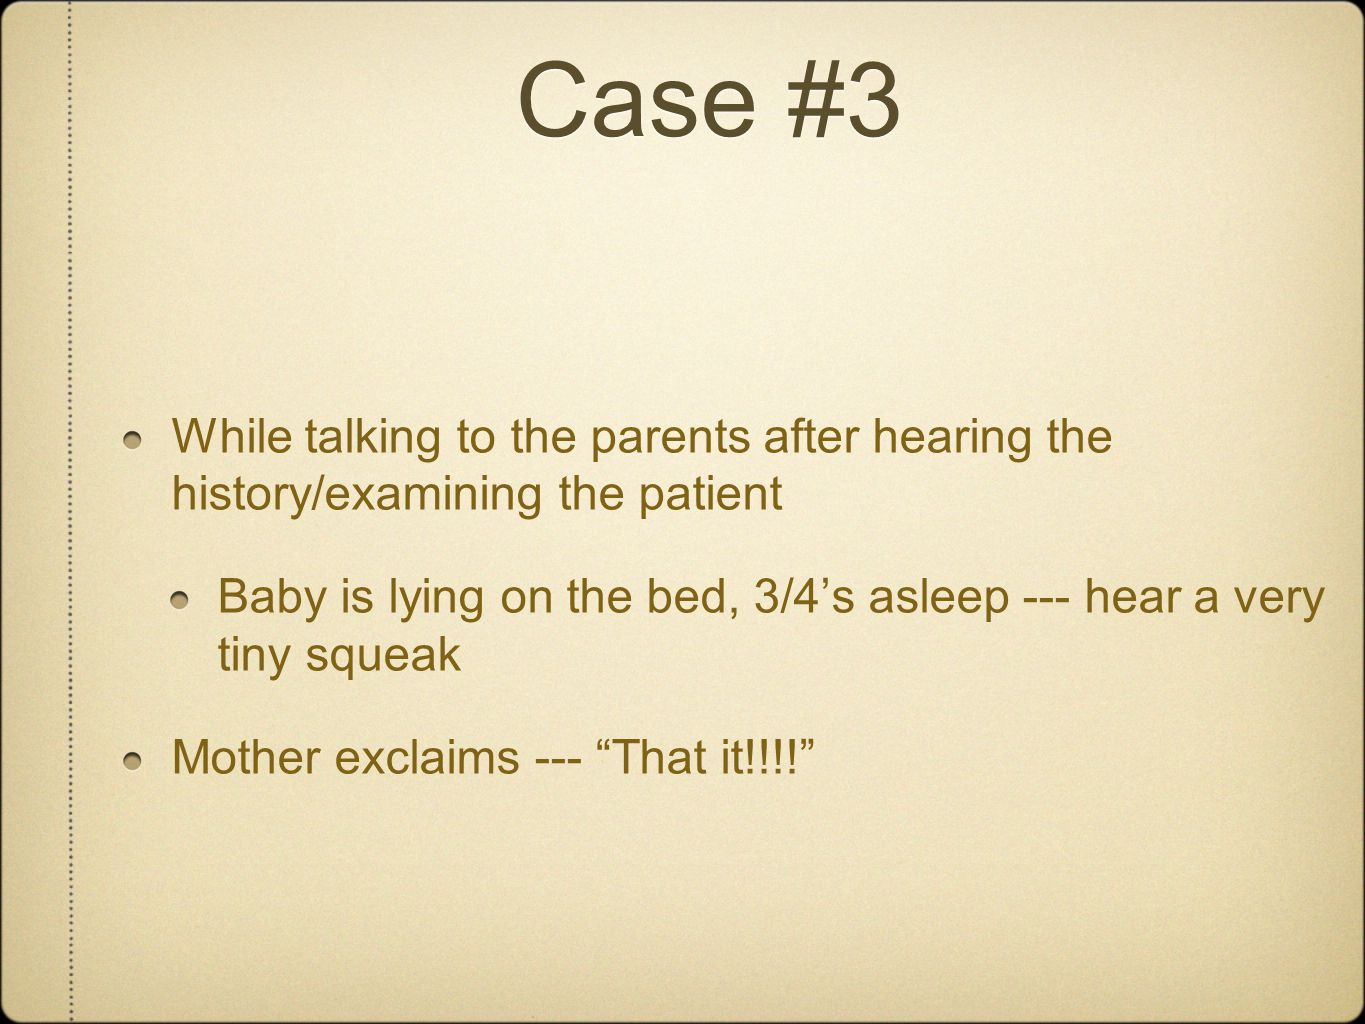 Case #3 While talking to the parents after hearing the history/examining the patient.